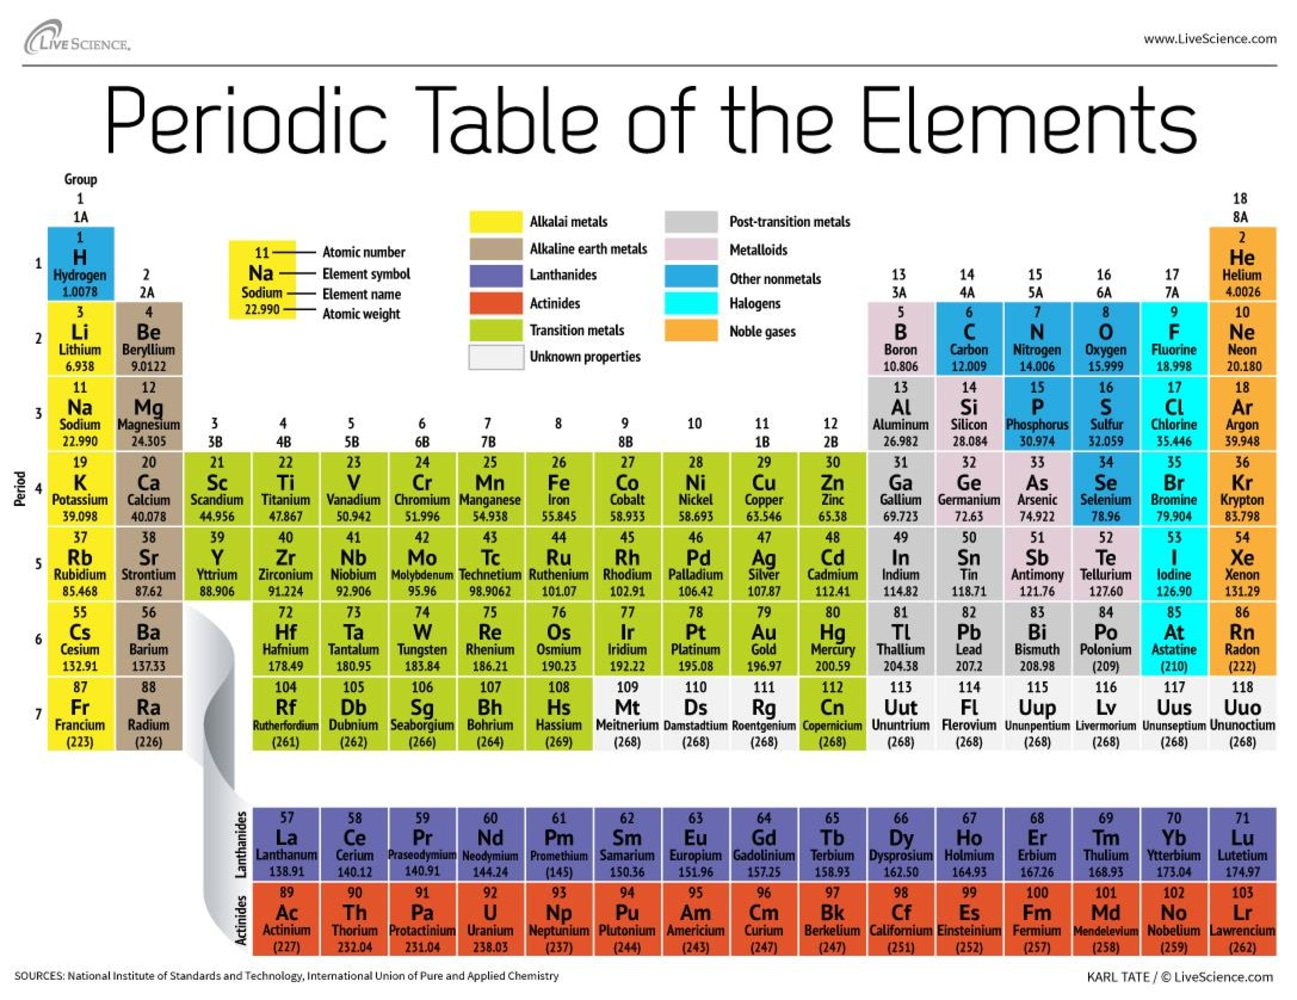 New element 117 vies for a seat at the periodic table nbc news image periodic table of elements urtaz Gallery